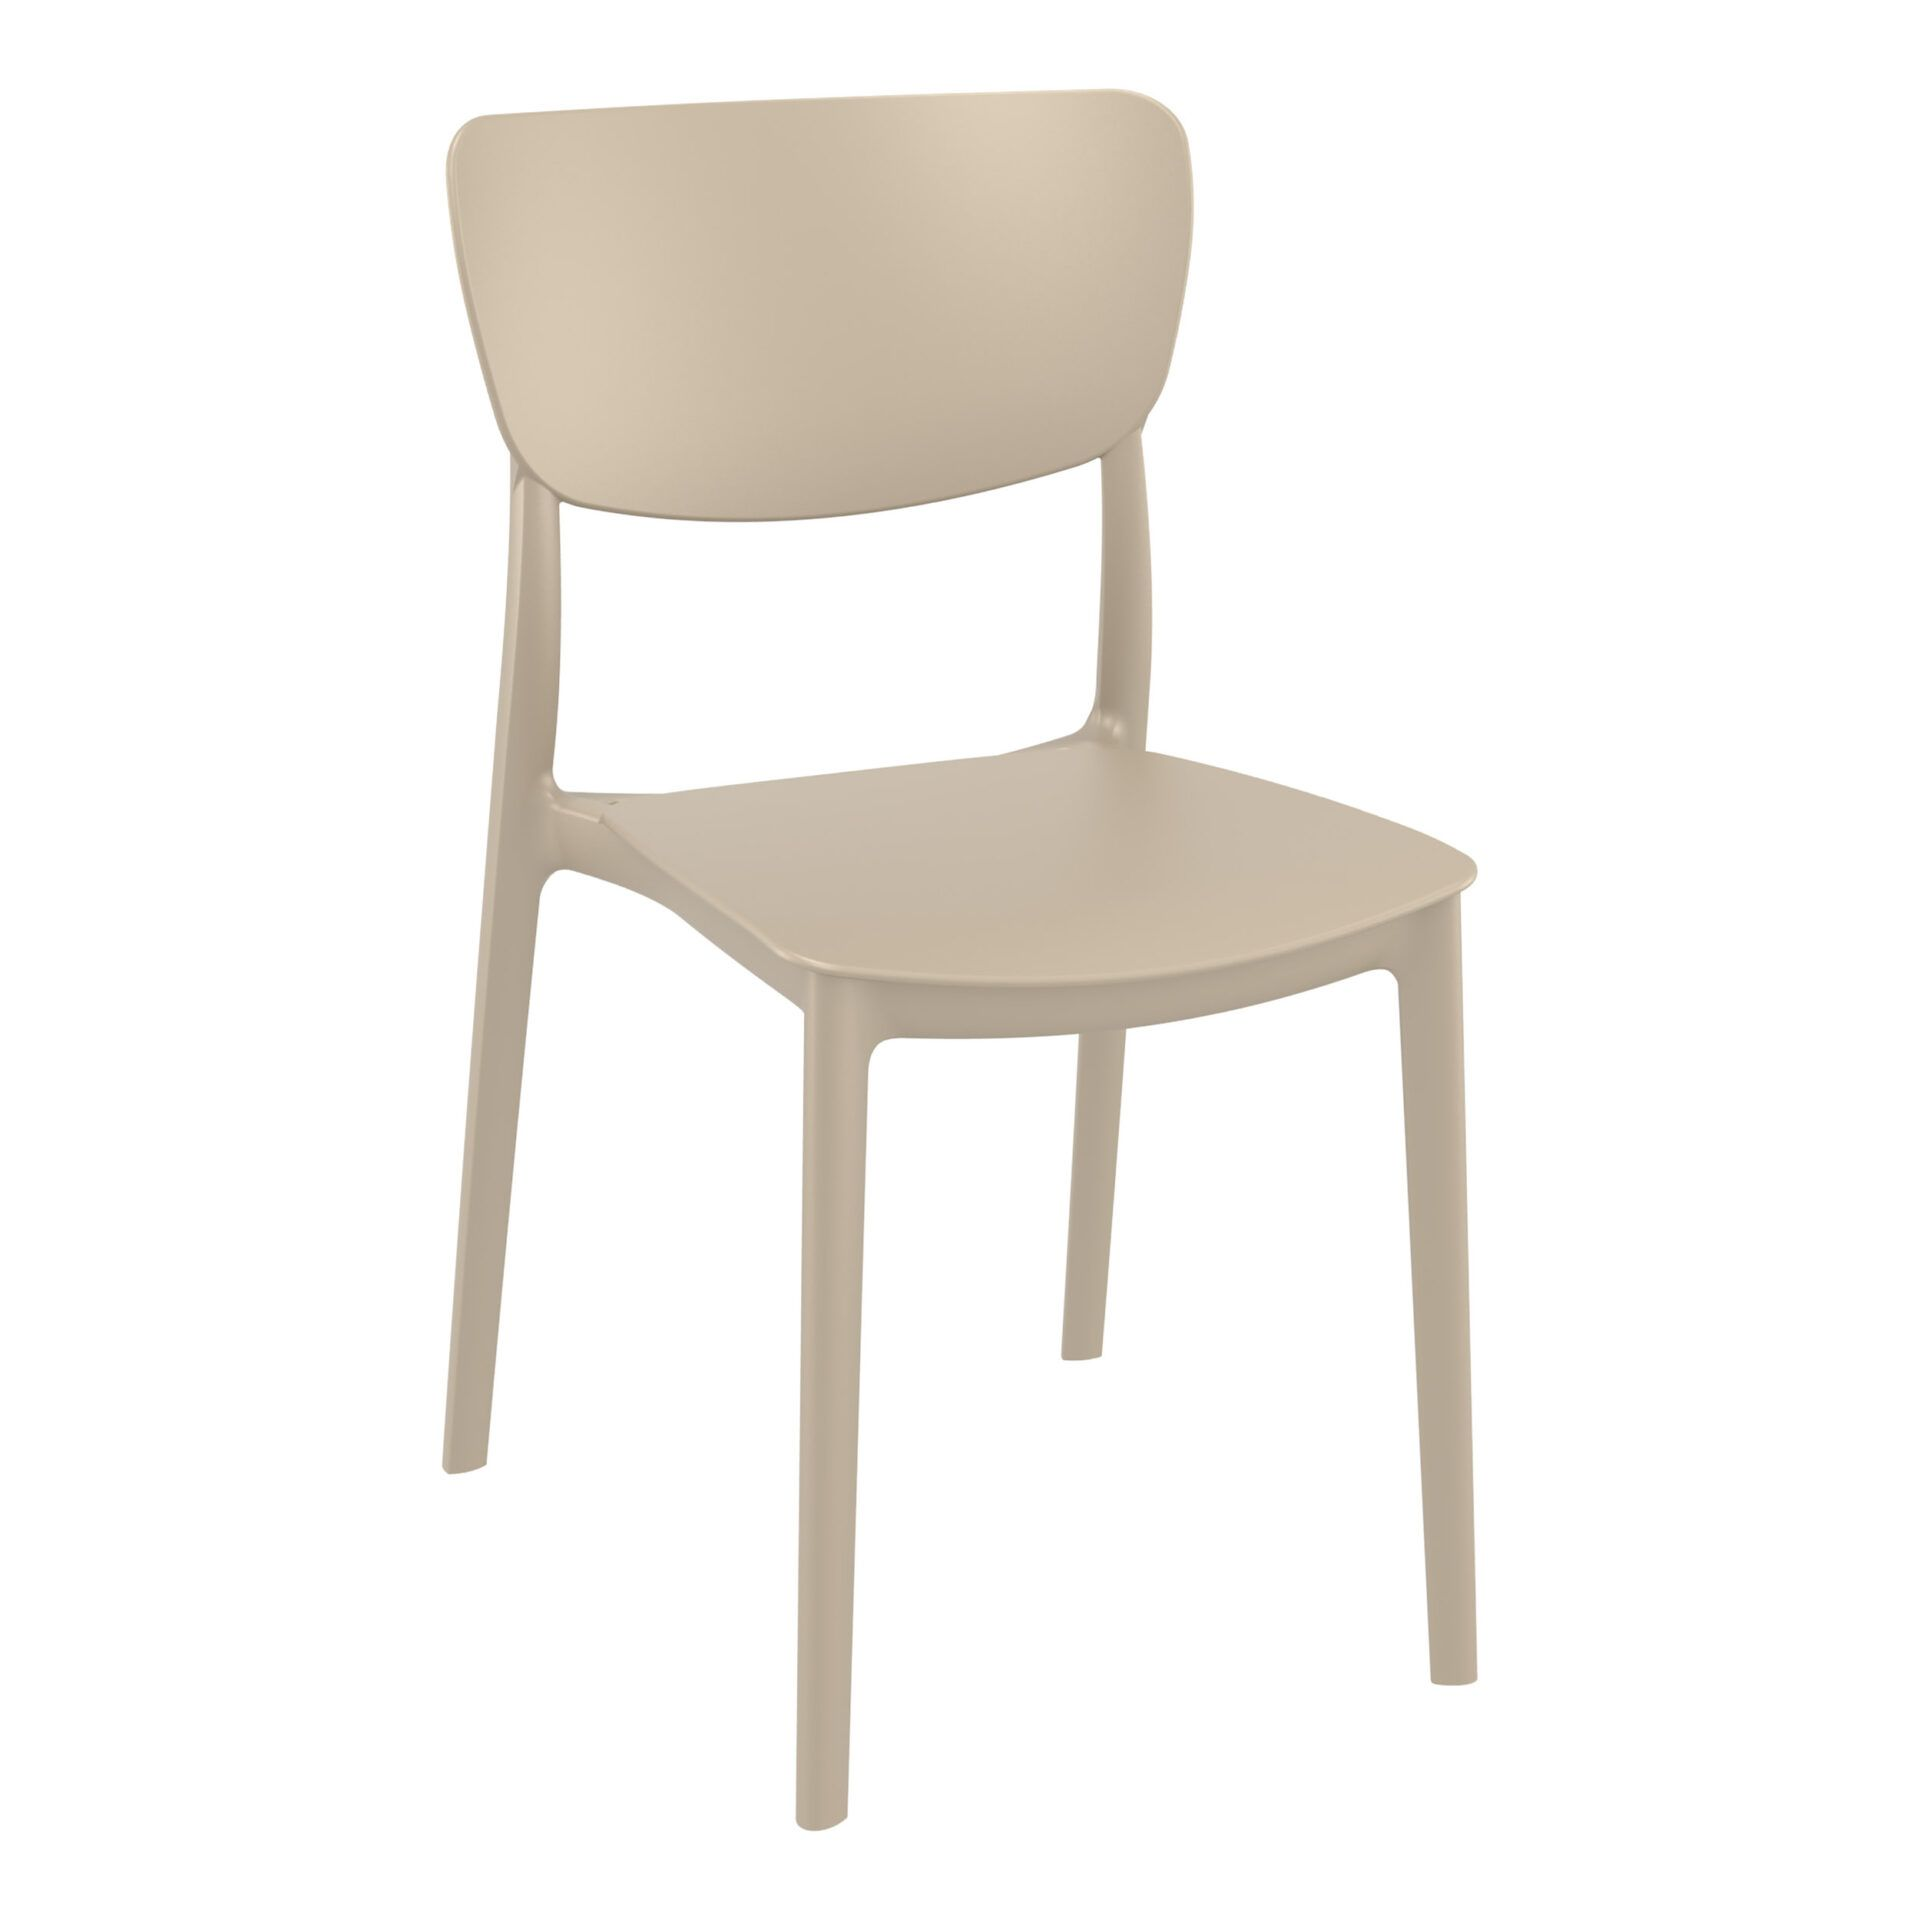 polypropylene outdoor dining monna chair taupe front side